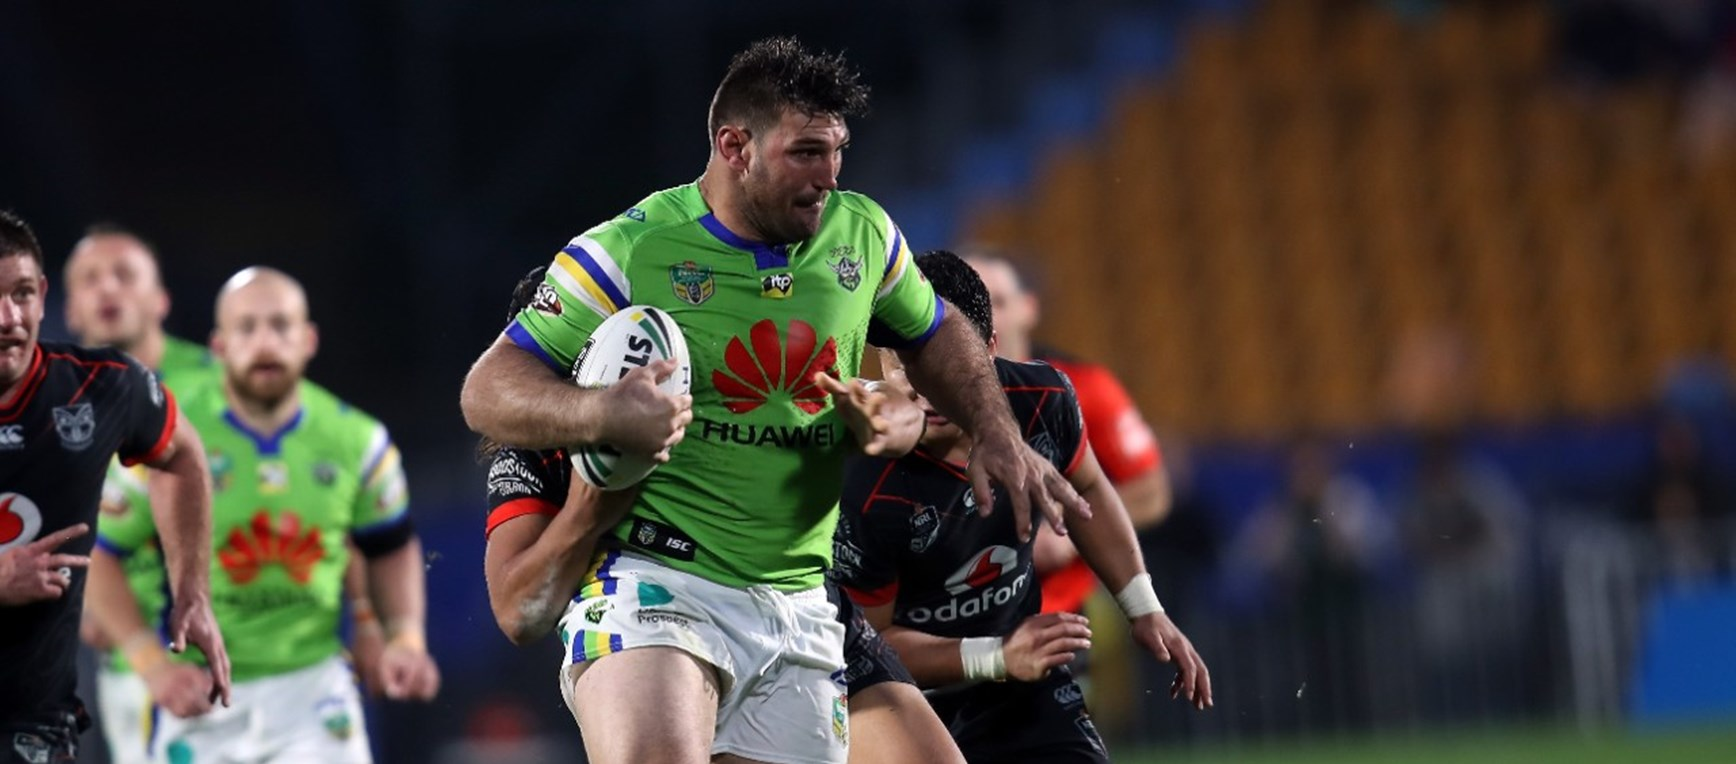 Gallery: Raiders v Warriors